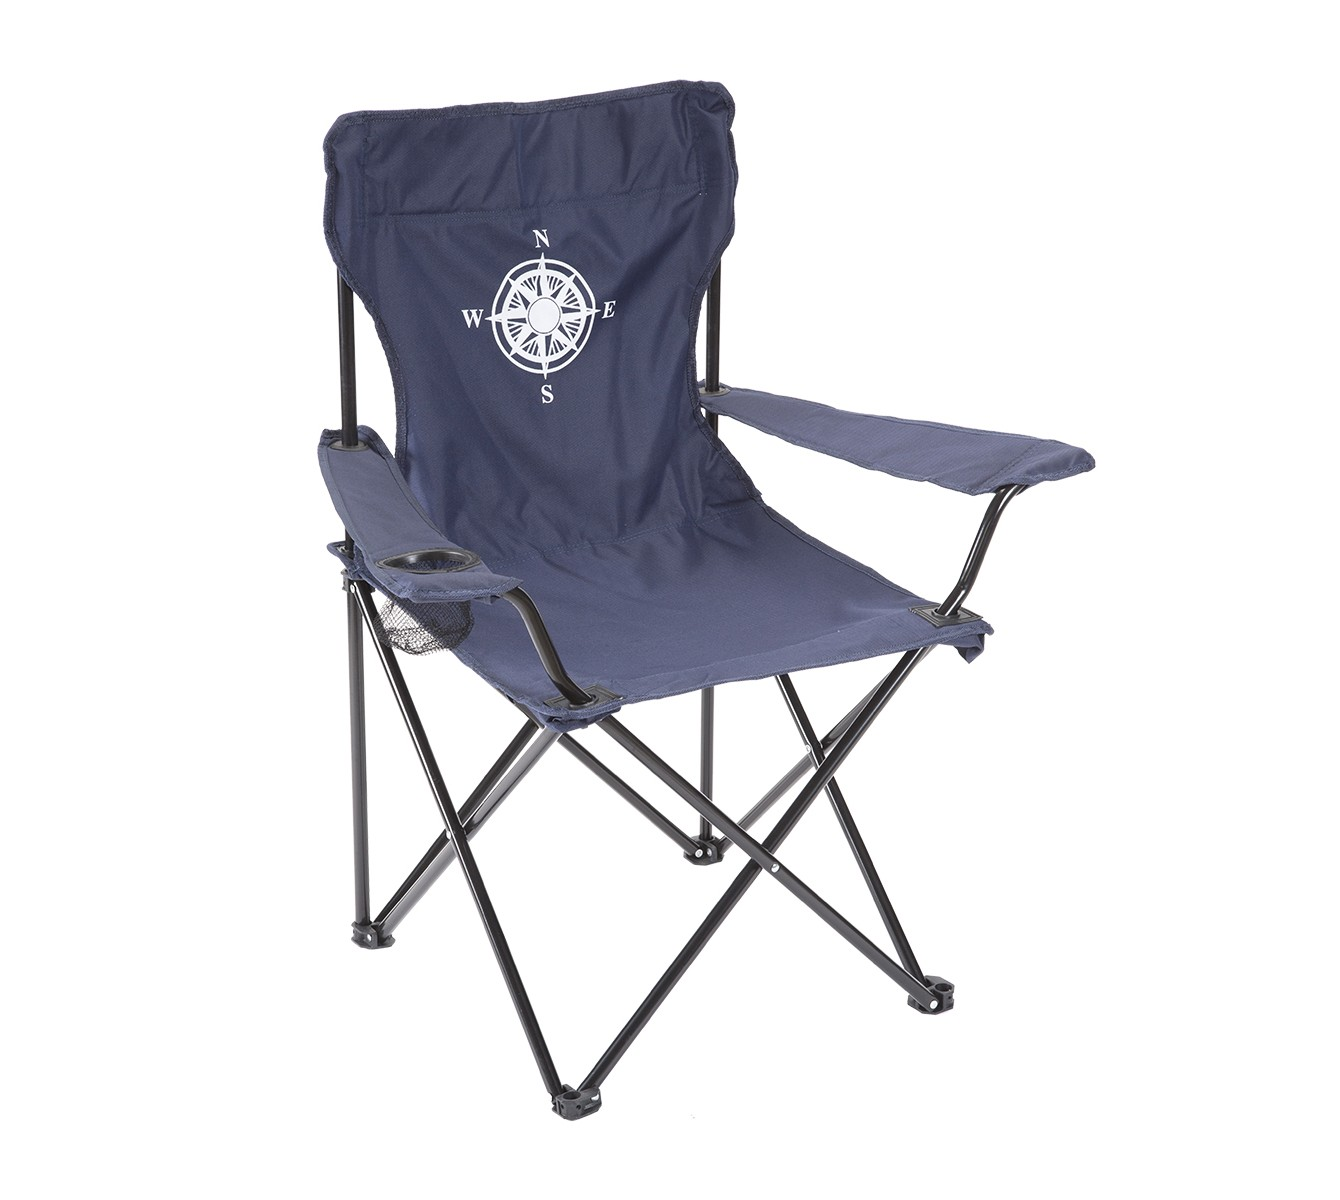 Chaise de plage camping pliable bl wedestock for Chaise pliable